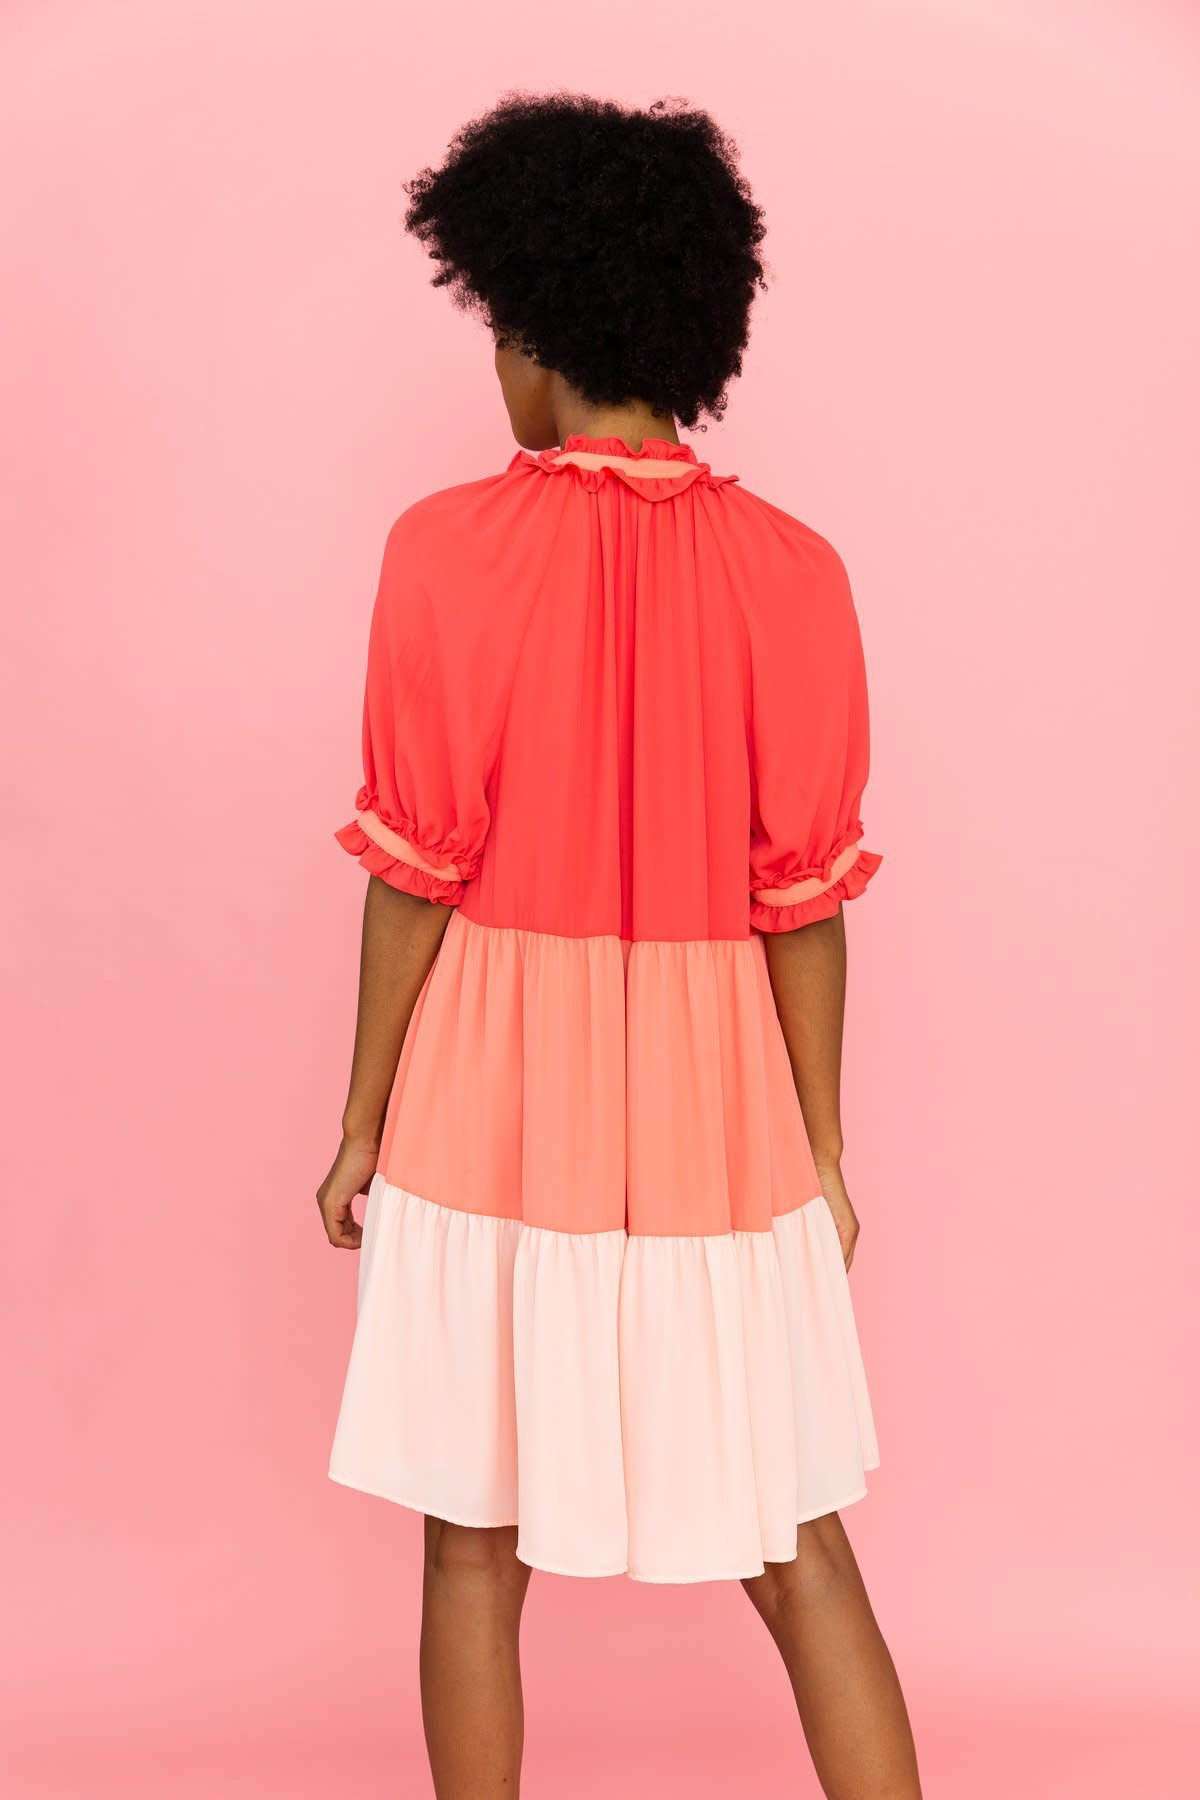 Crosby By Mollie Burch Isabelle Dress in Rose Mix